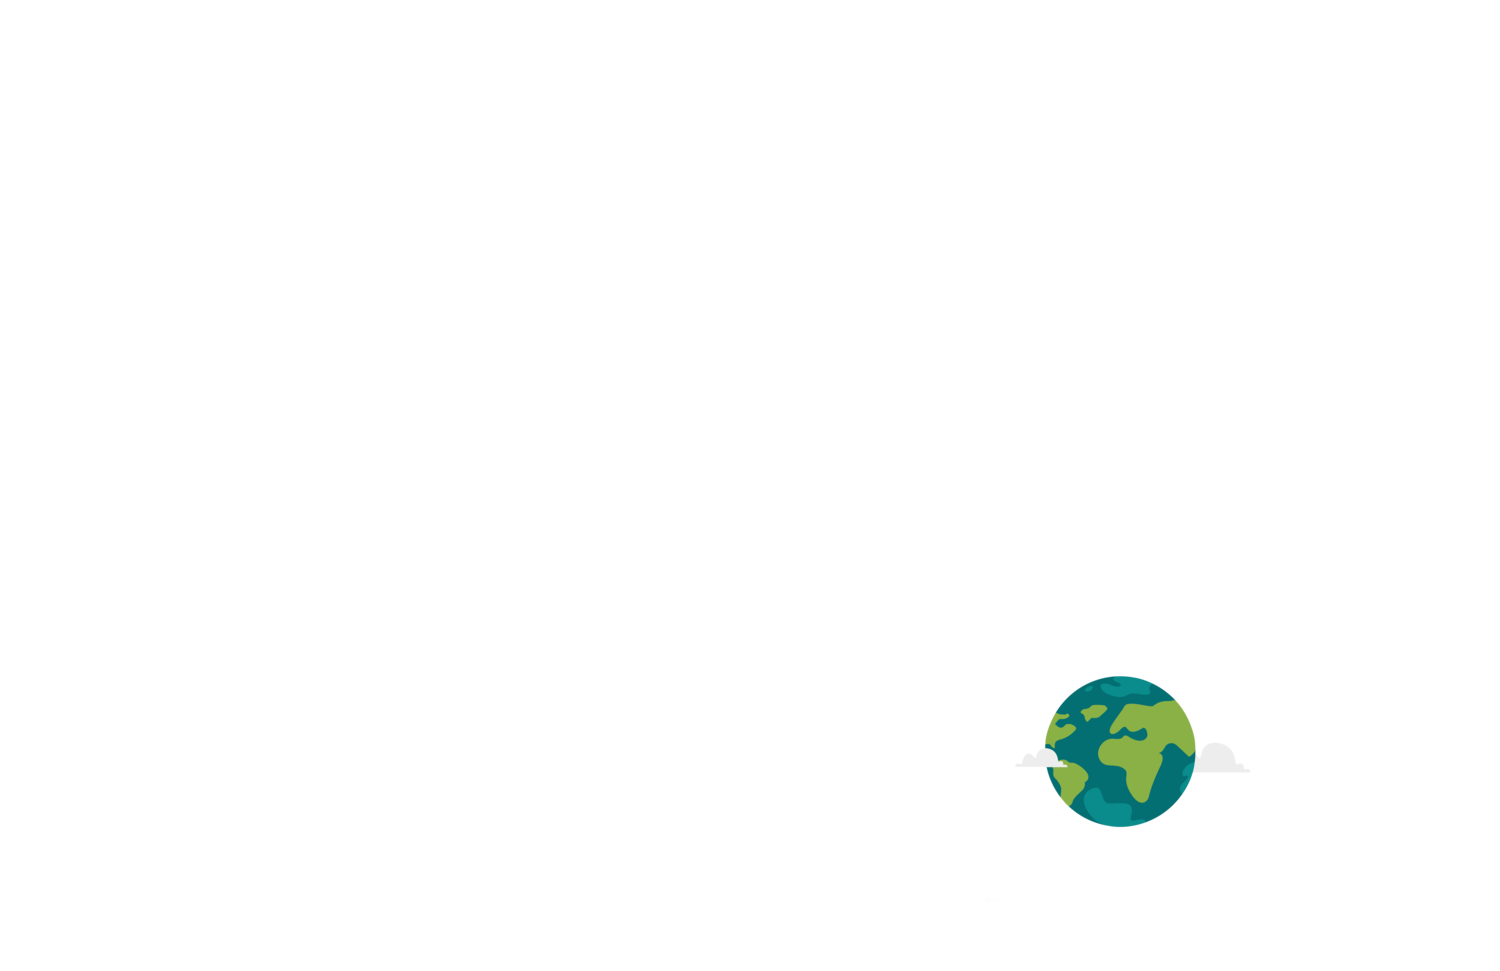 The Cultura Fest